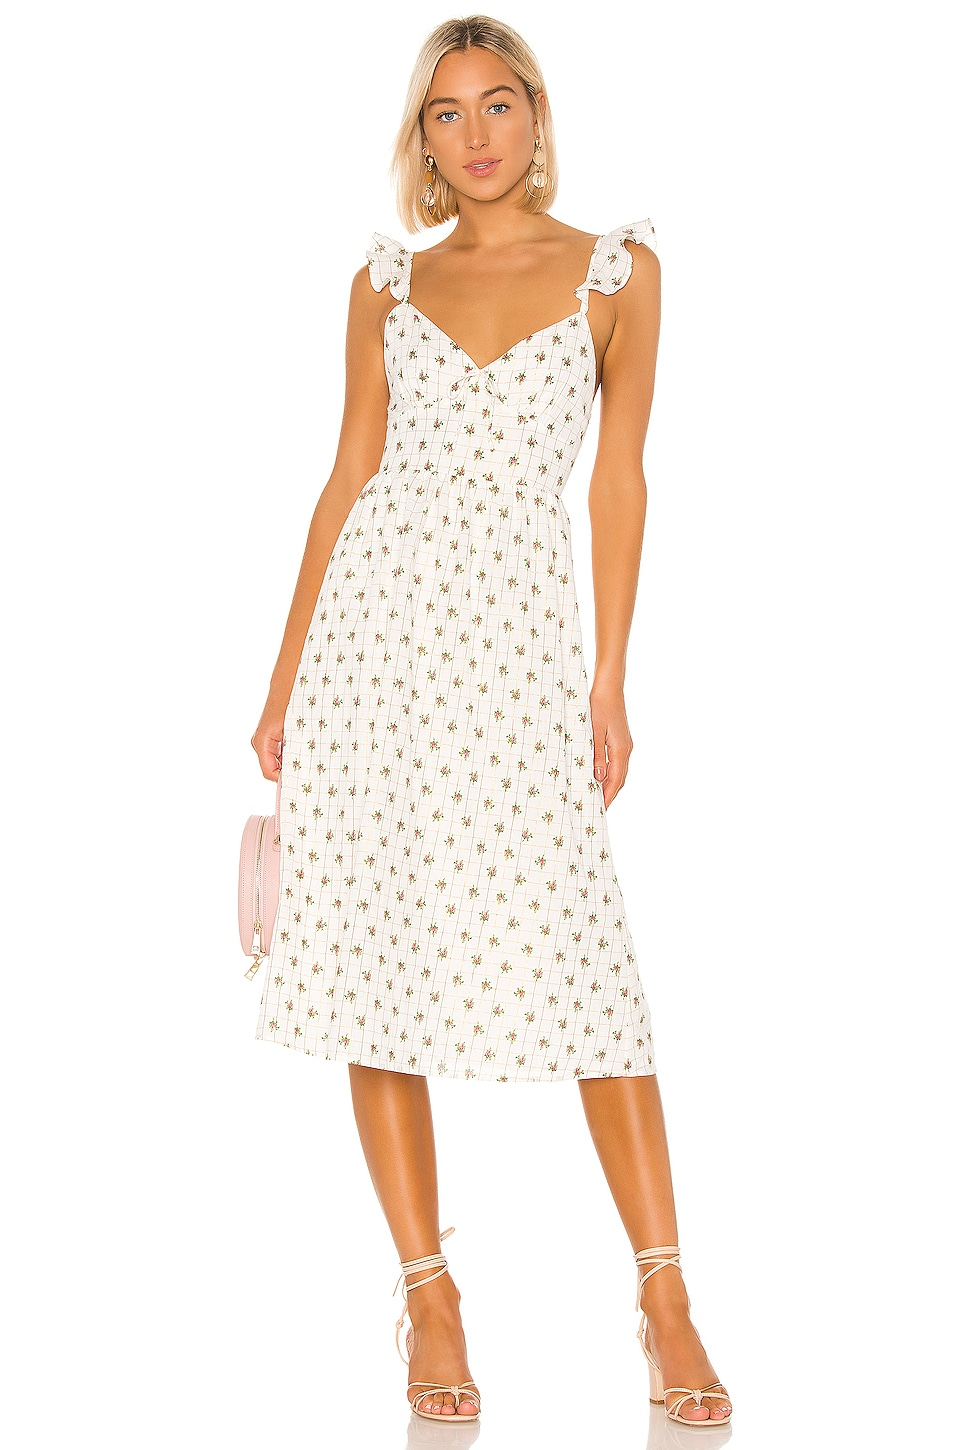 MAJORELLE Maura Midi Dress in White Ditsy